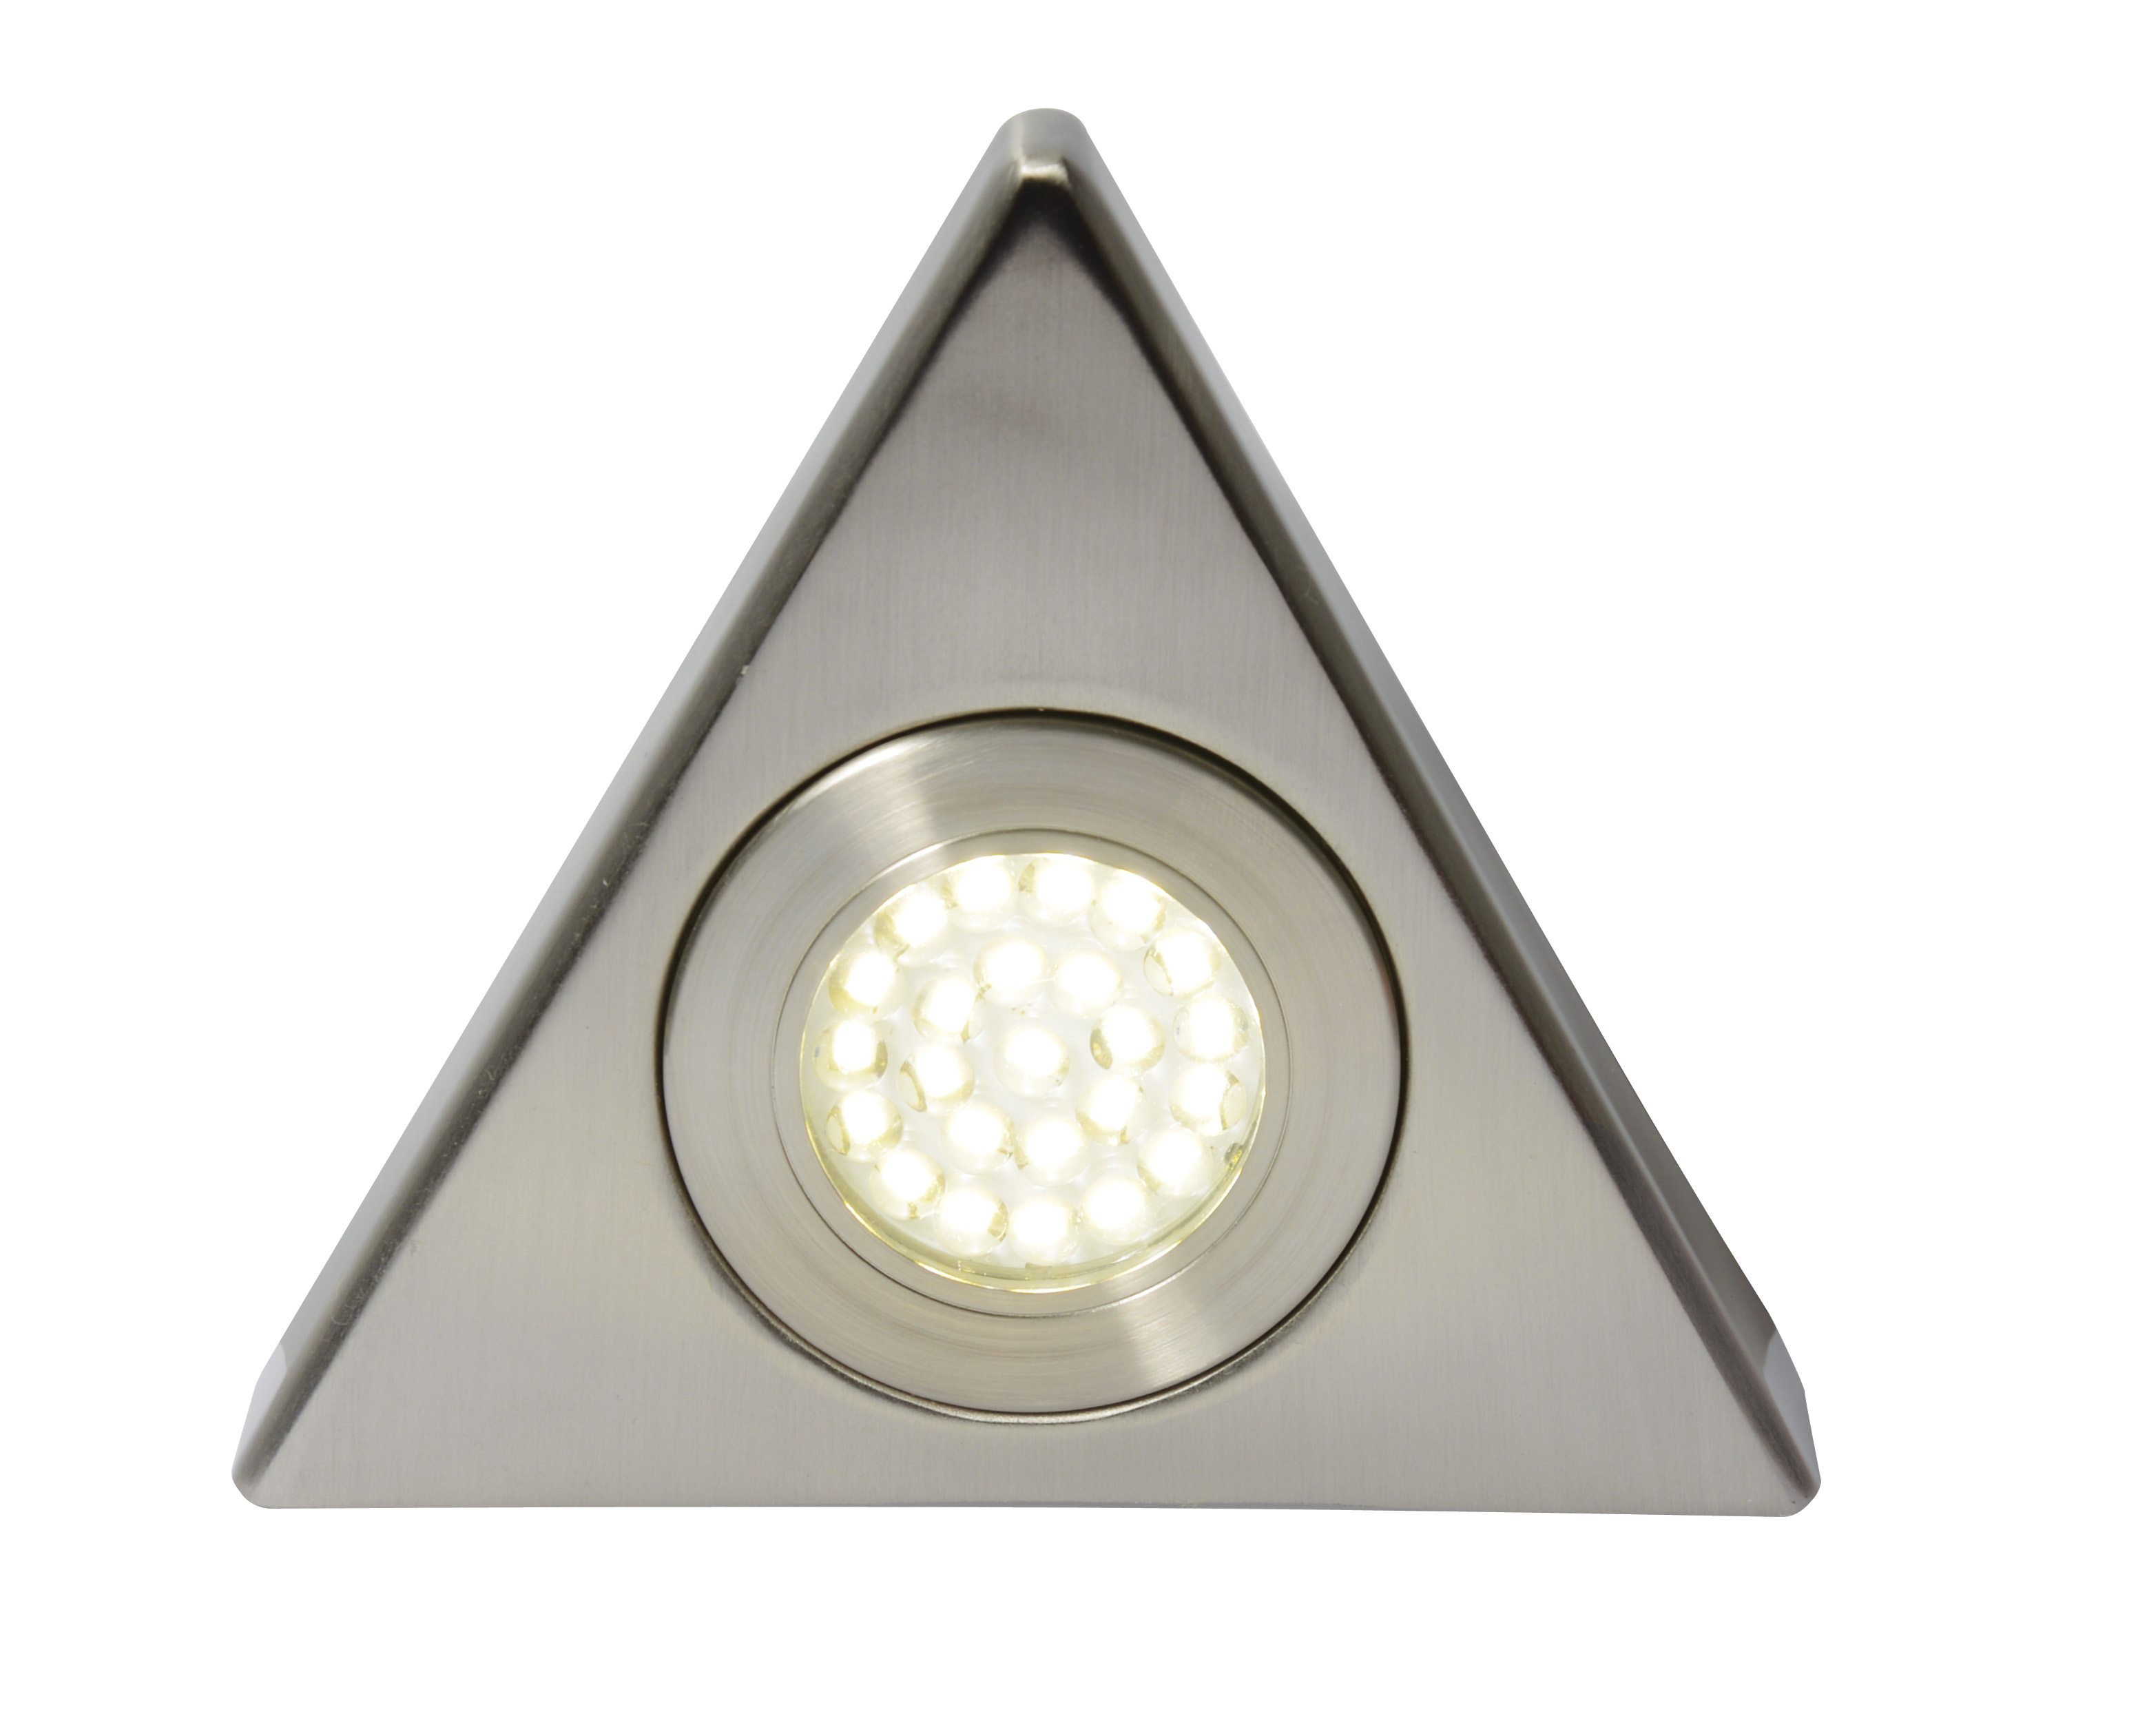 CUL-21626 Fonte LED Under Cabinet Light - Cool White